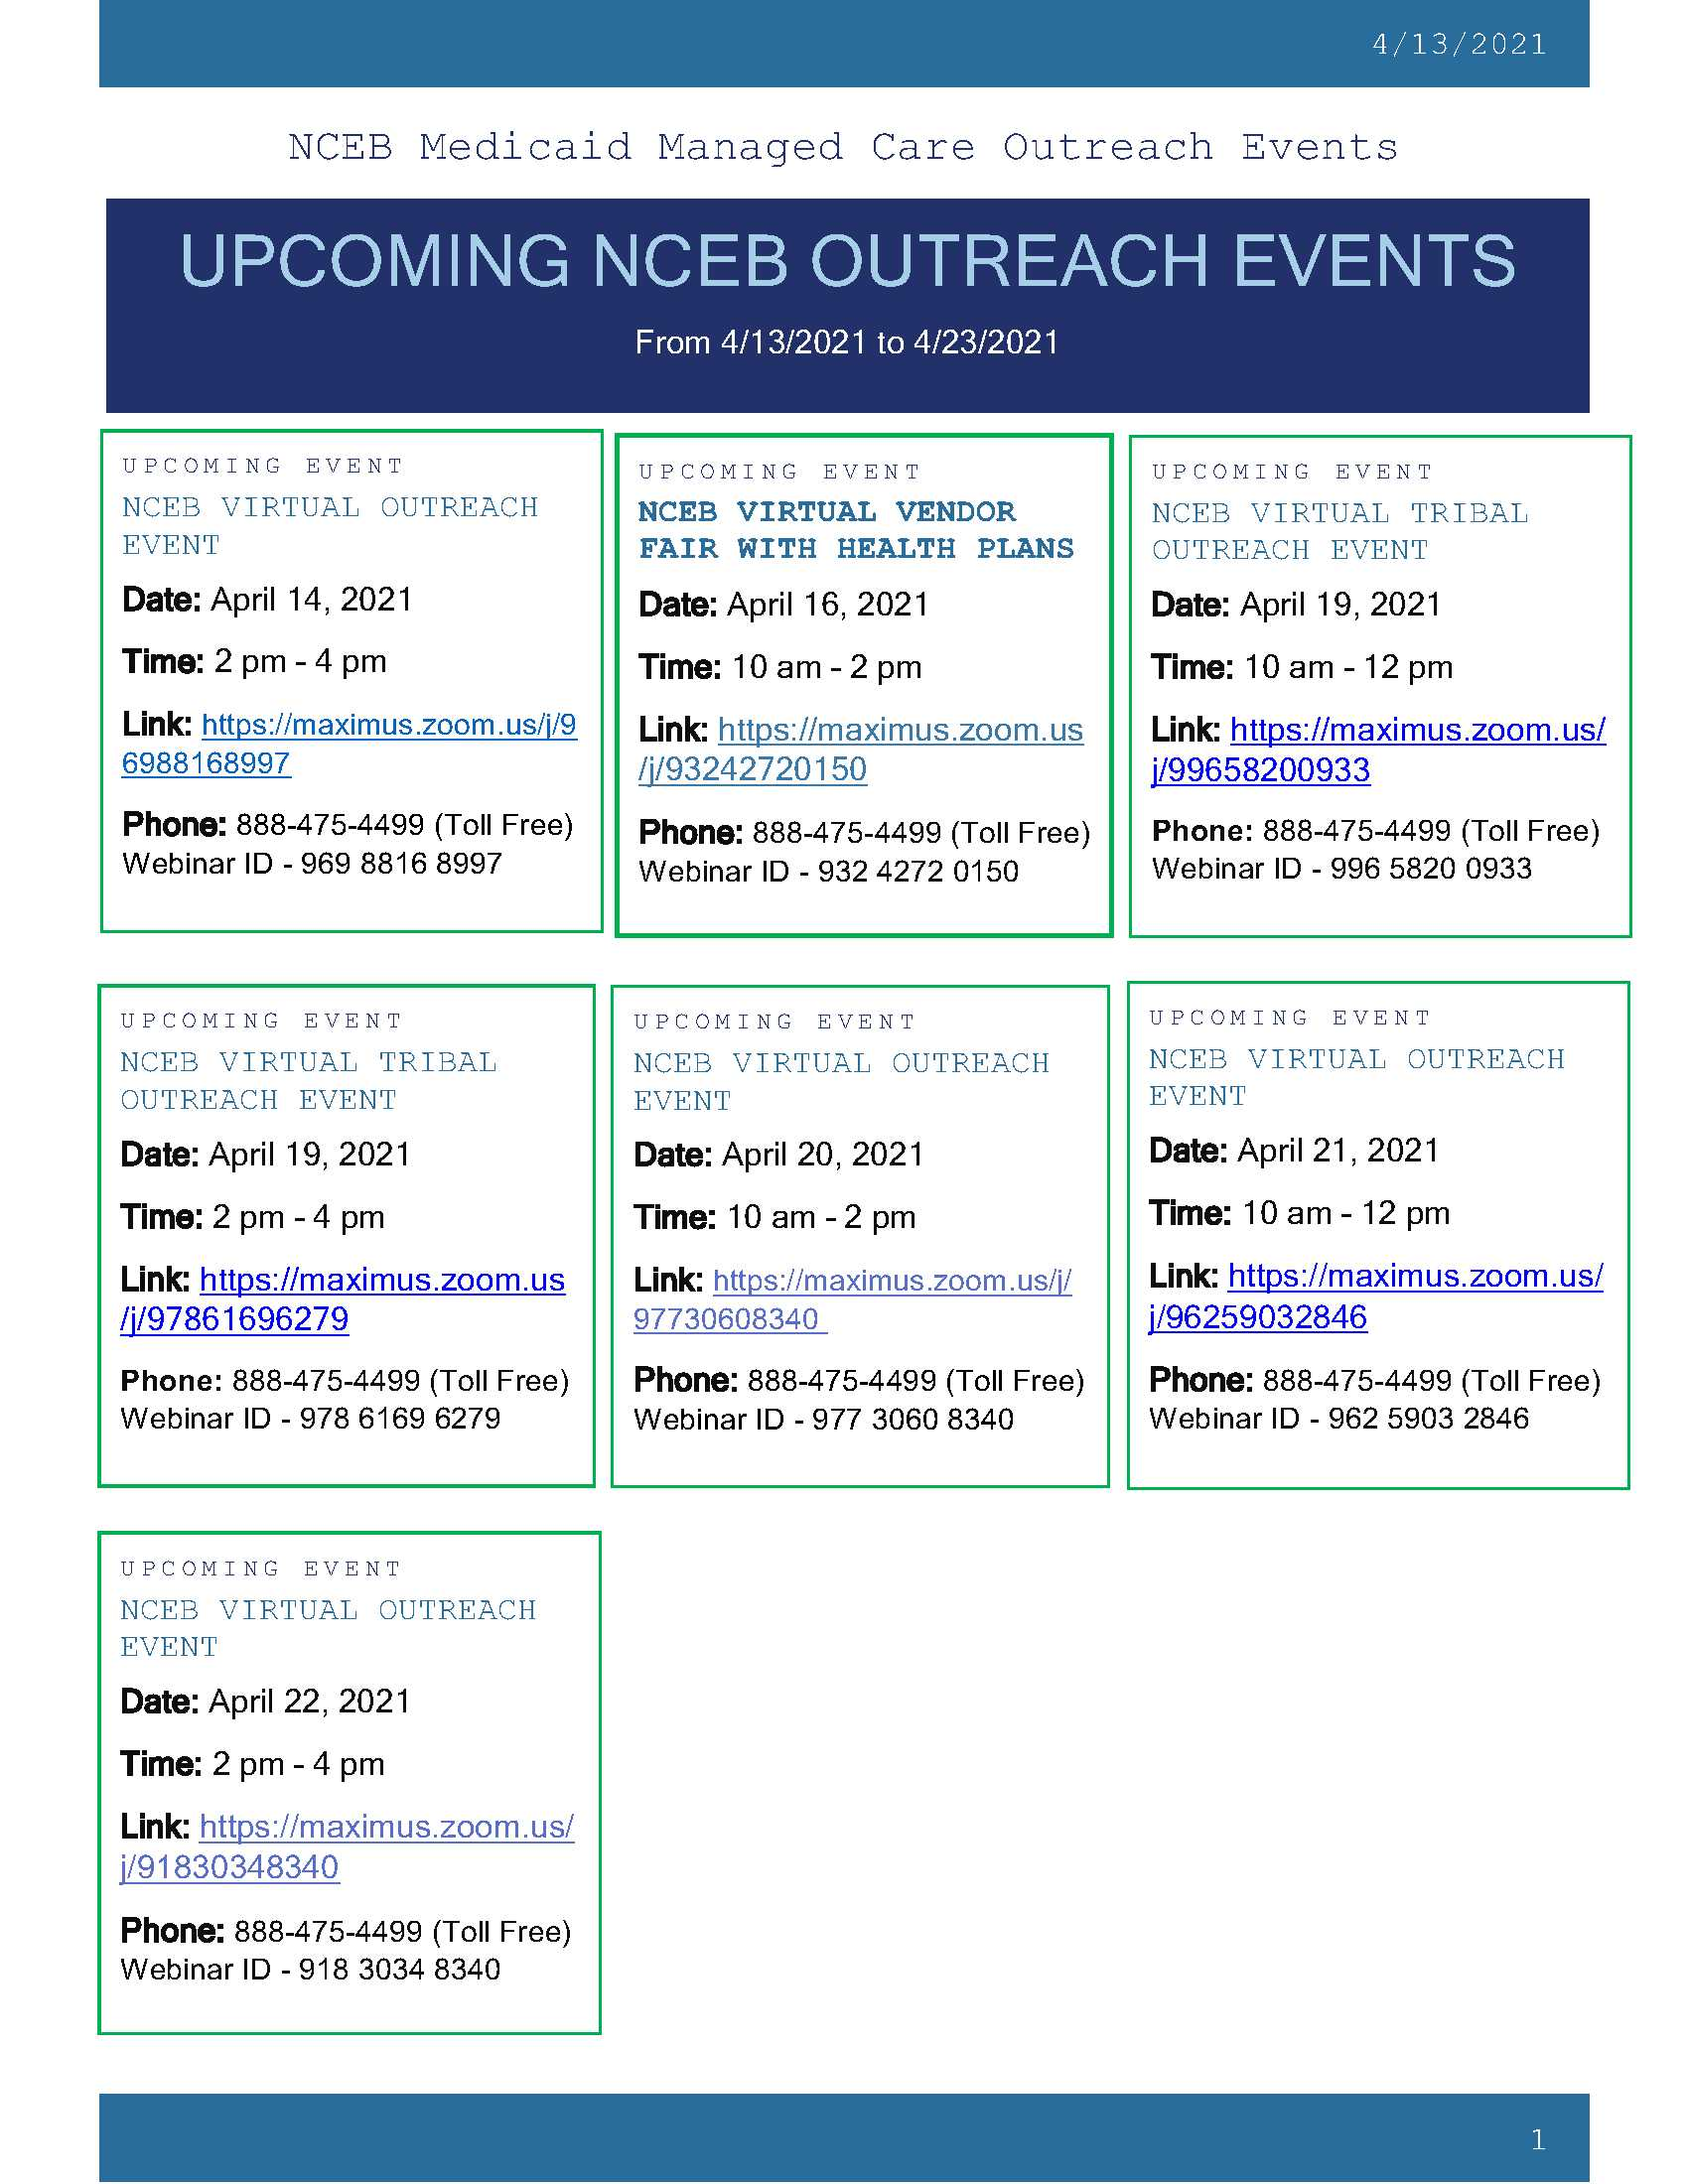 NCEB COUNTY OUTREACH EVENTS 4.13.2021